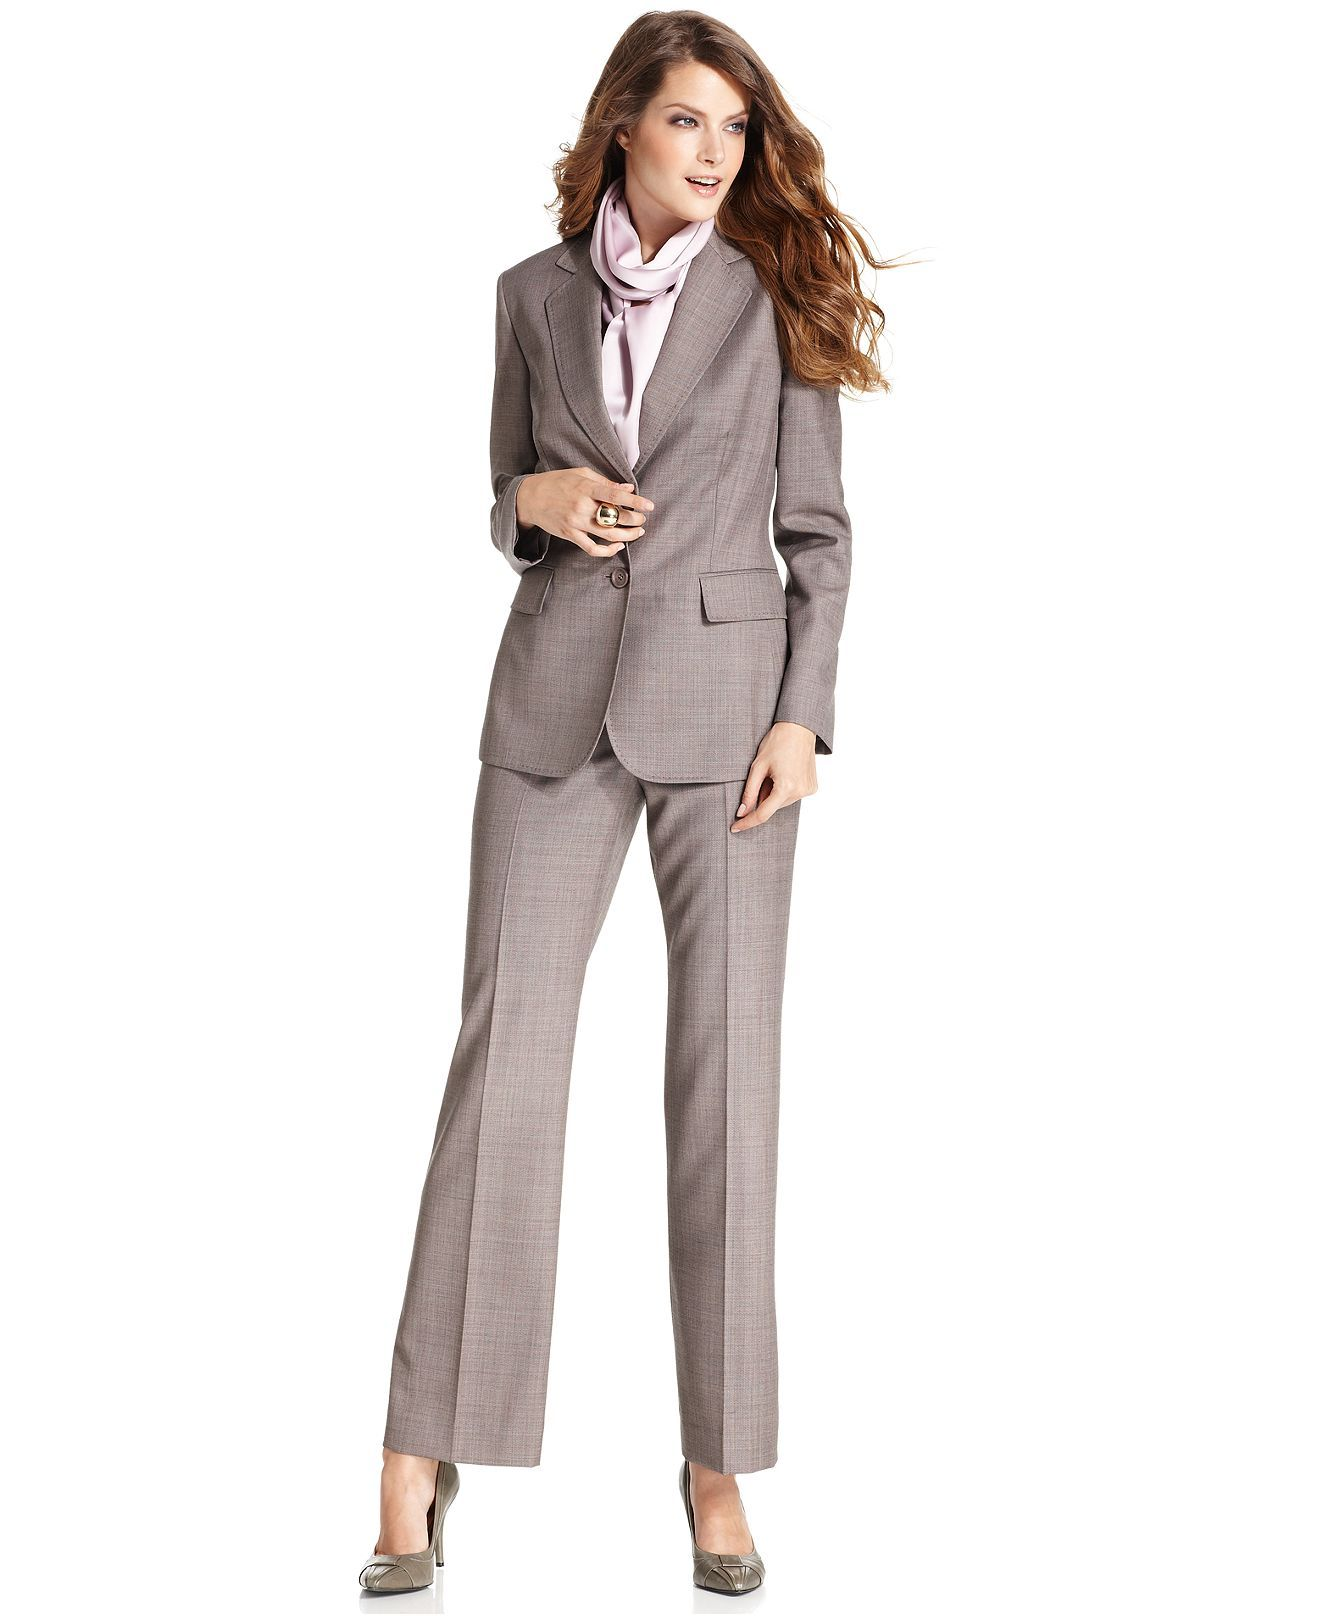 Katharine suit idea at Macy's--Anne Klein Suit, Removable Scarf ...